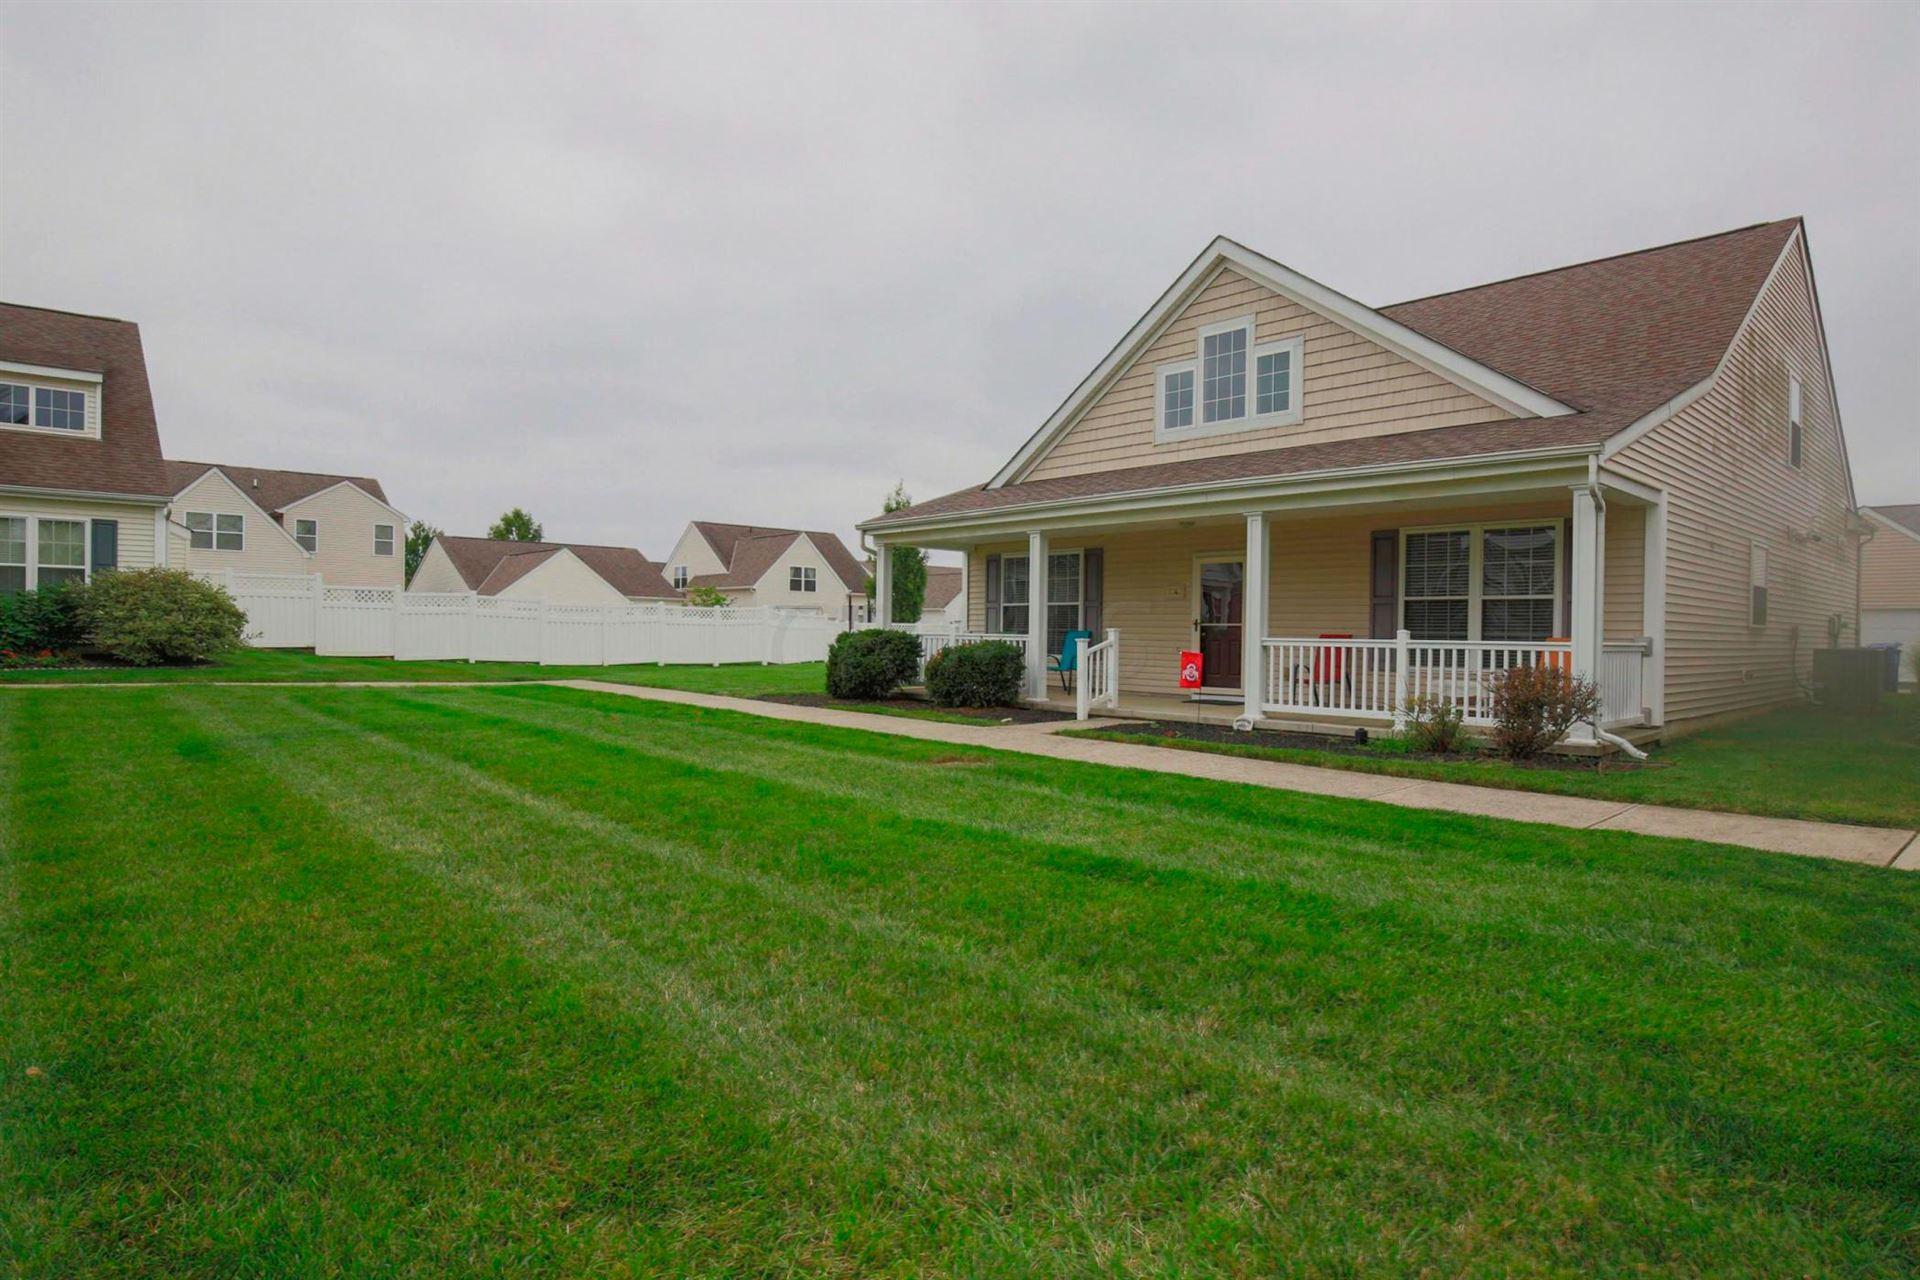 Photo of 6147 Highlander Drive, Westerville, OH 43081 (MLS # 220038267)